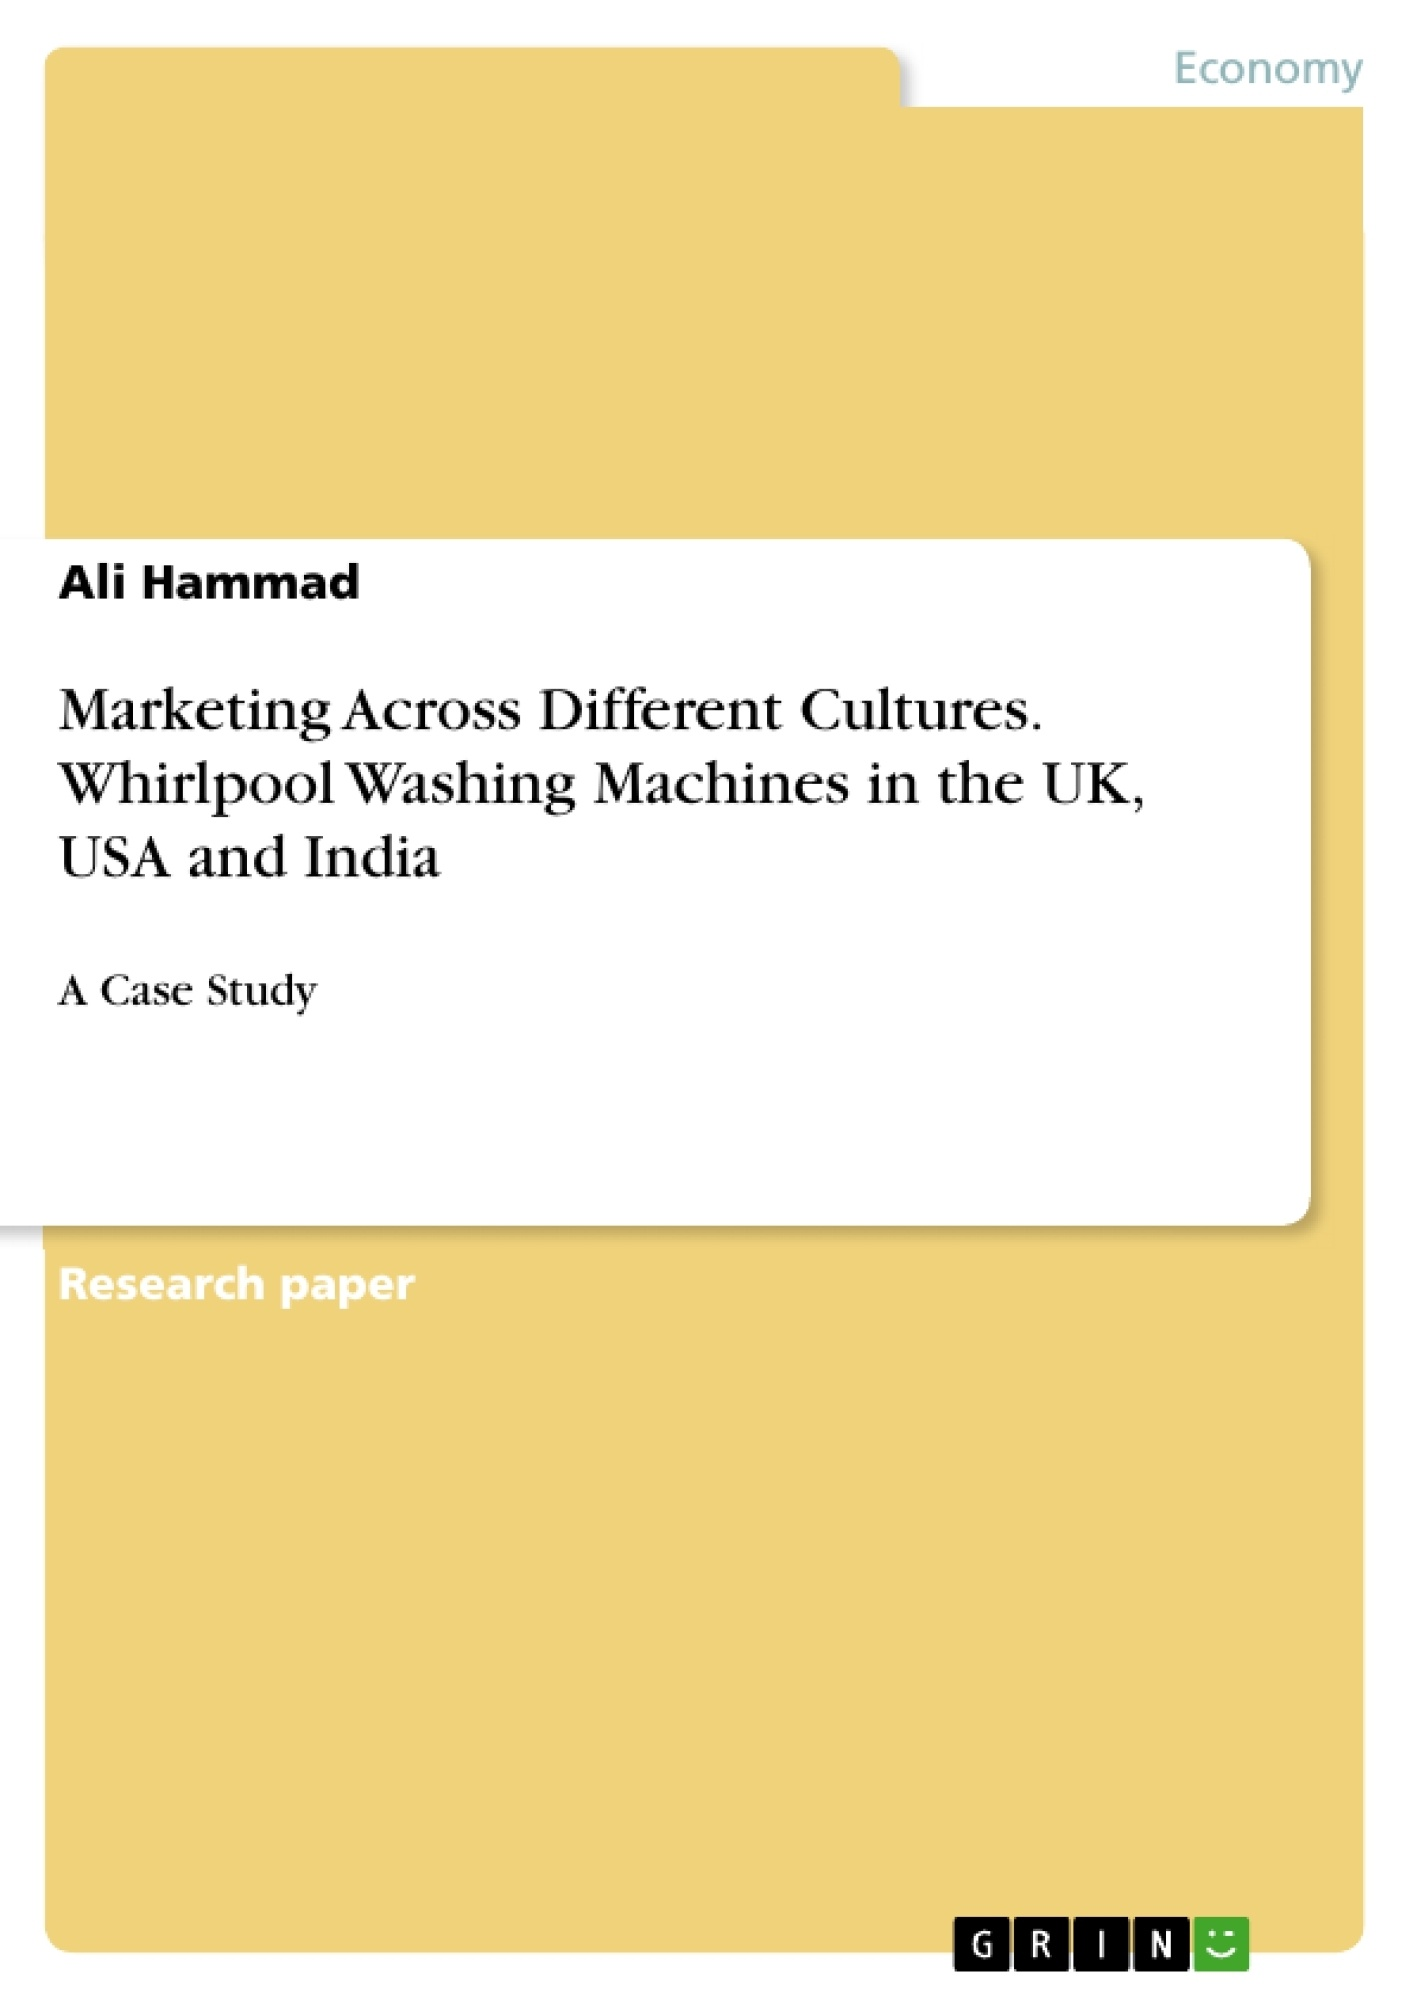 british telecommunications harvard case study Case studies  british telecom: bringing external innovation inside, london  business school case  harvard business school publishing, case 9-801-350.